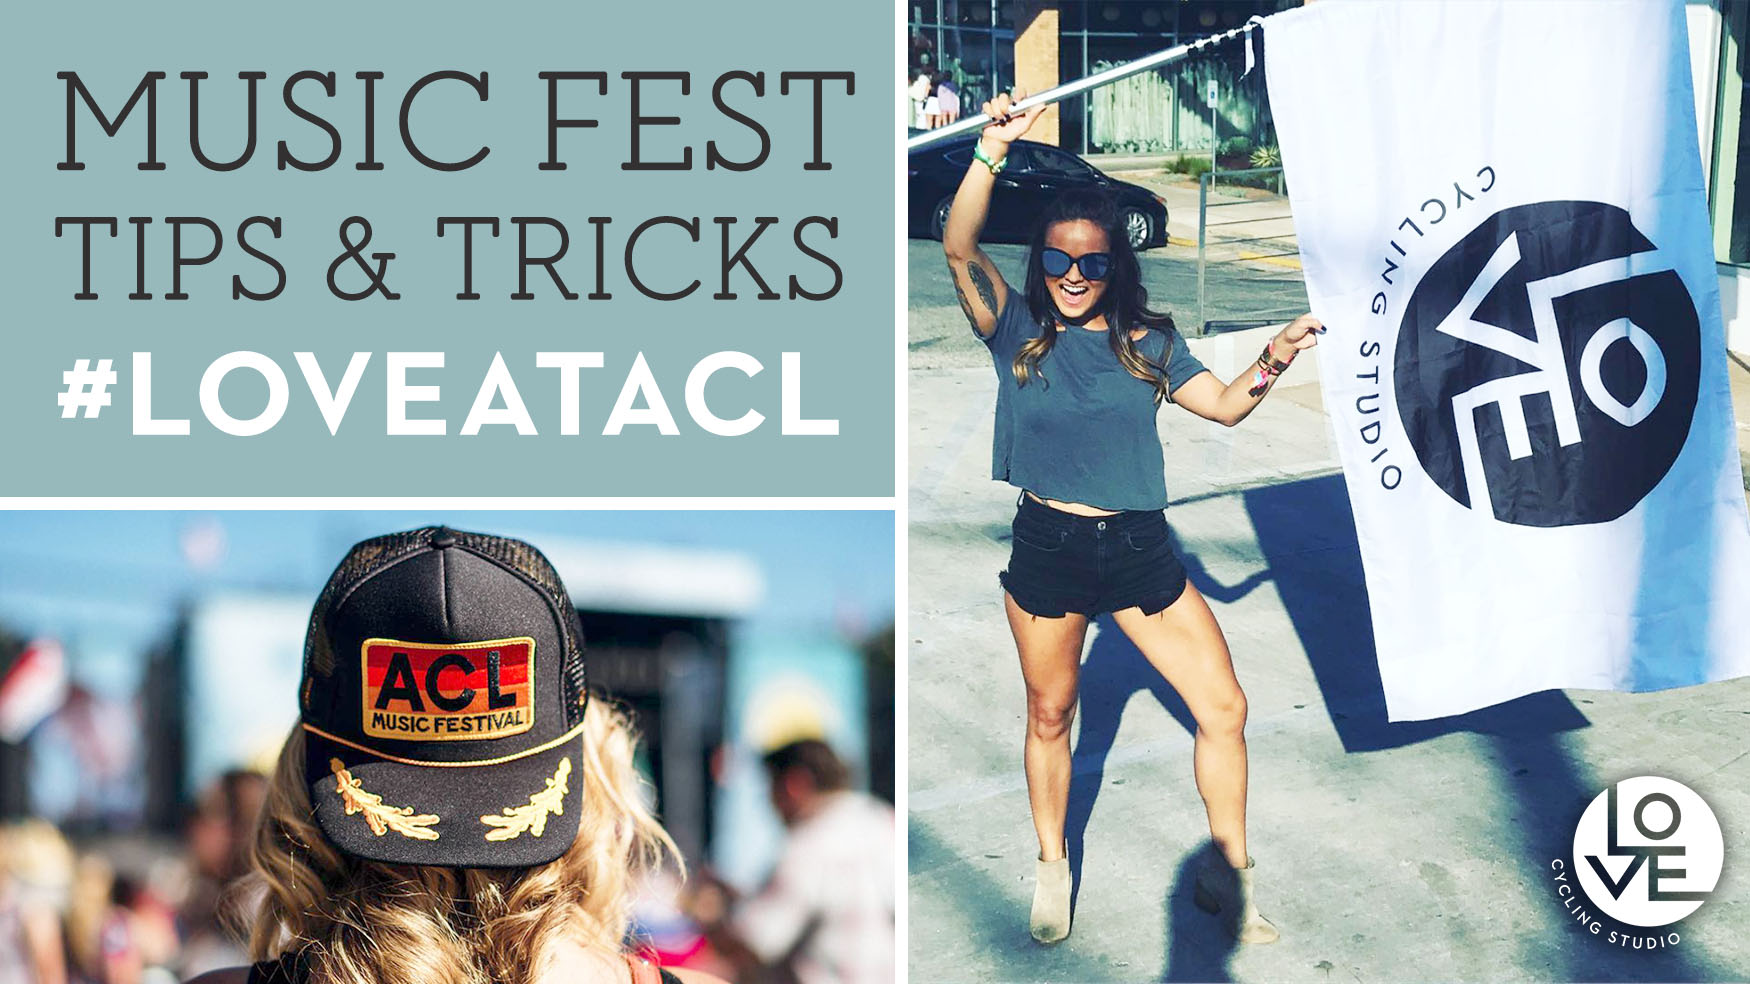 Music Fest Tips and Tricks: #LOVEatACL